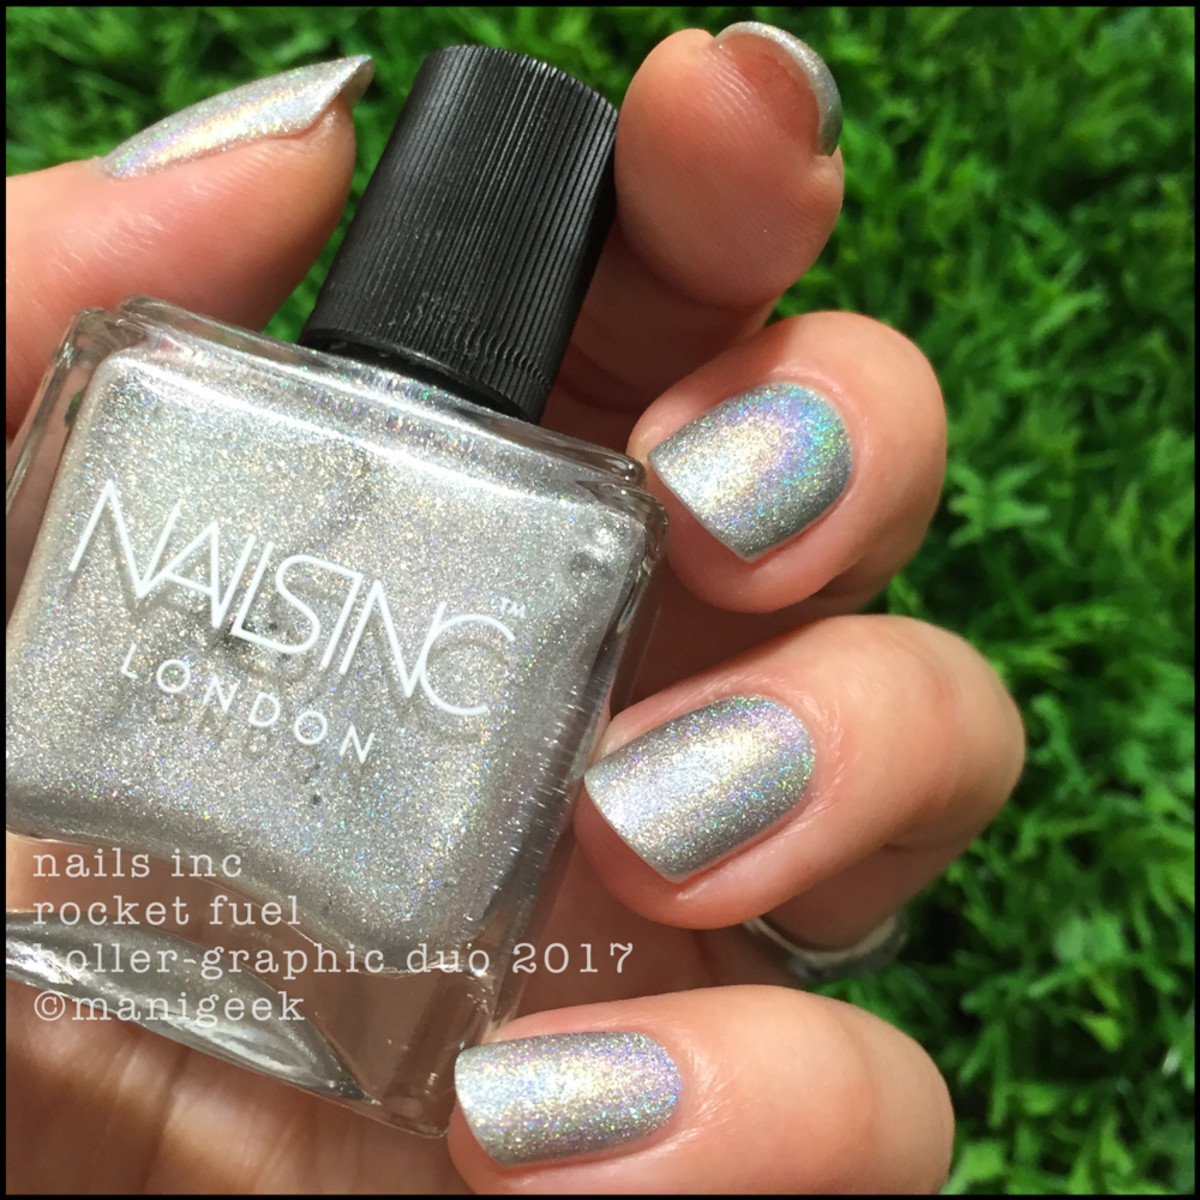 Nails Inc Rocket Fuel Holler-Graphic Duo Swatches Review 2017 2